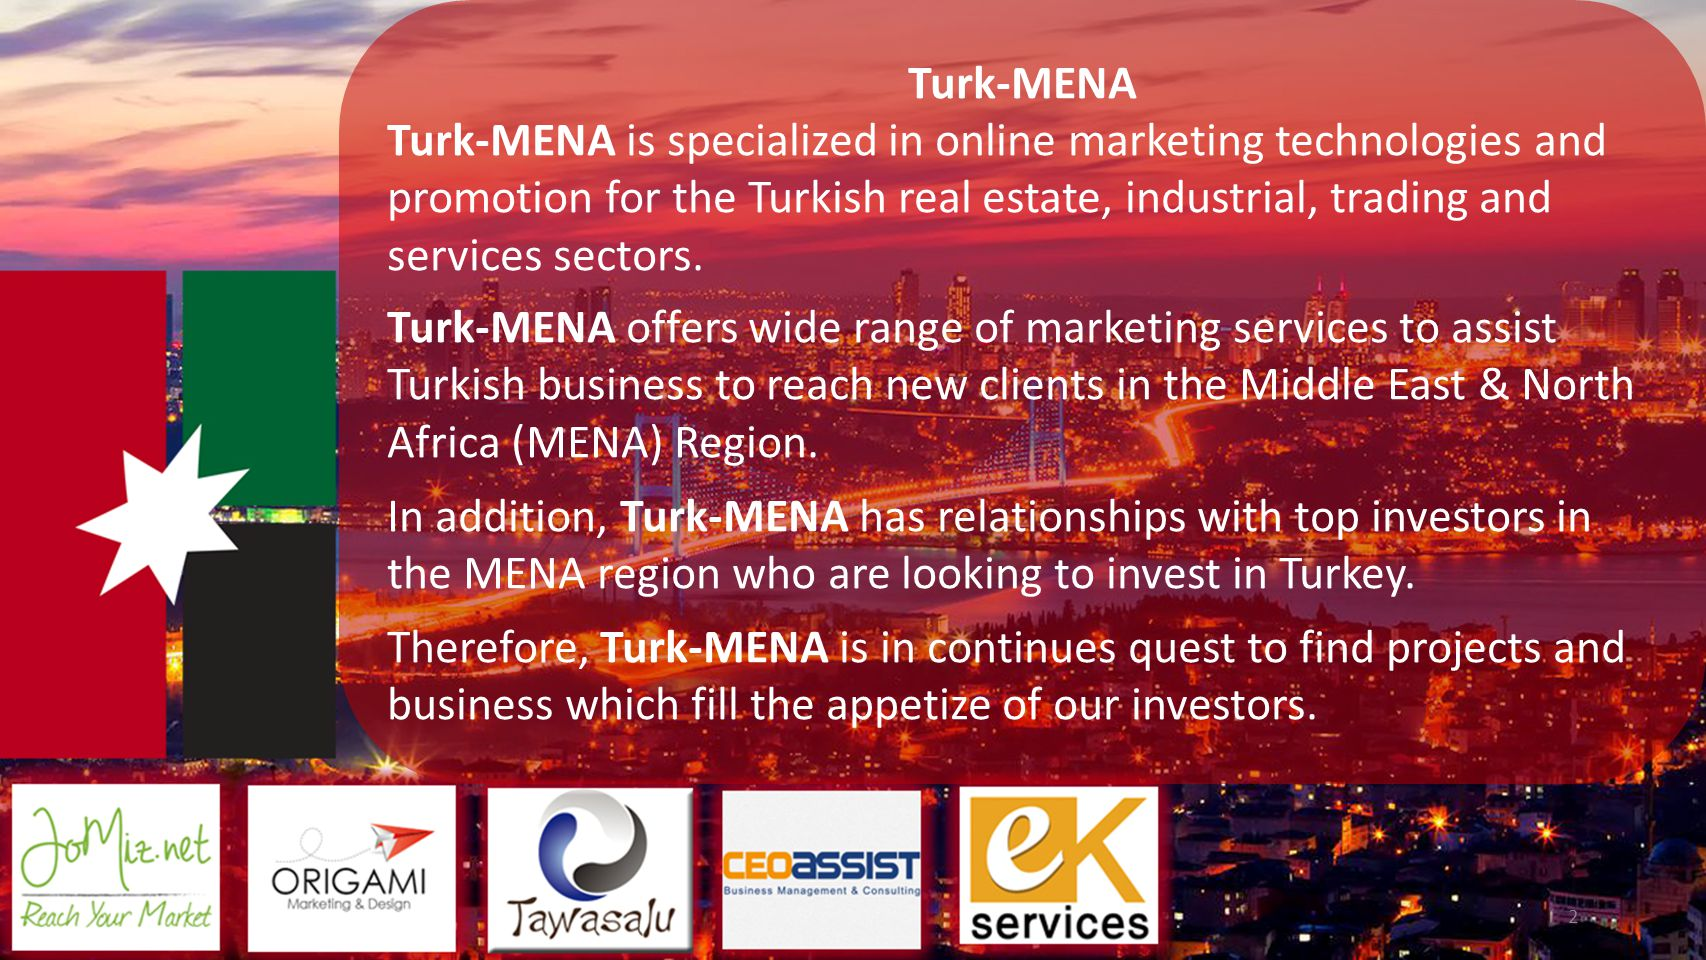 2 Turk-MENA Turk-MENA is specialized in online marketing technologies and promotion for the Turkish real estate, industrial, trading and services sectors.